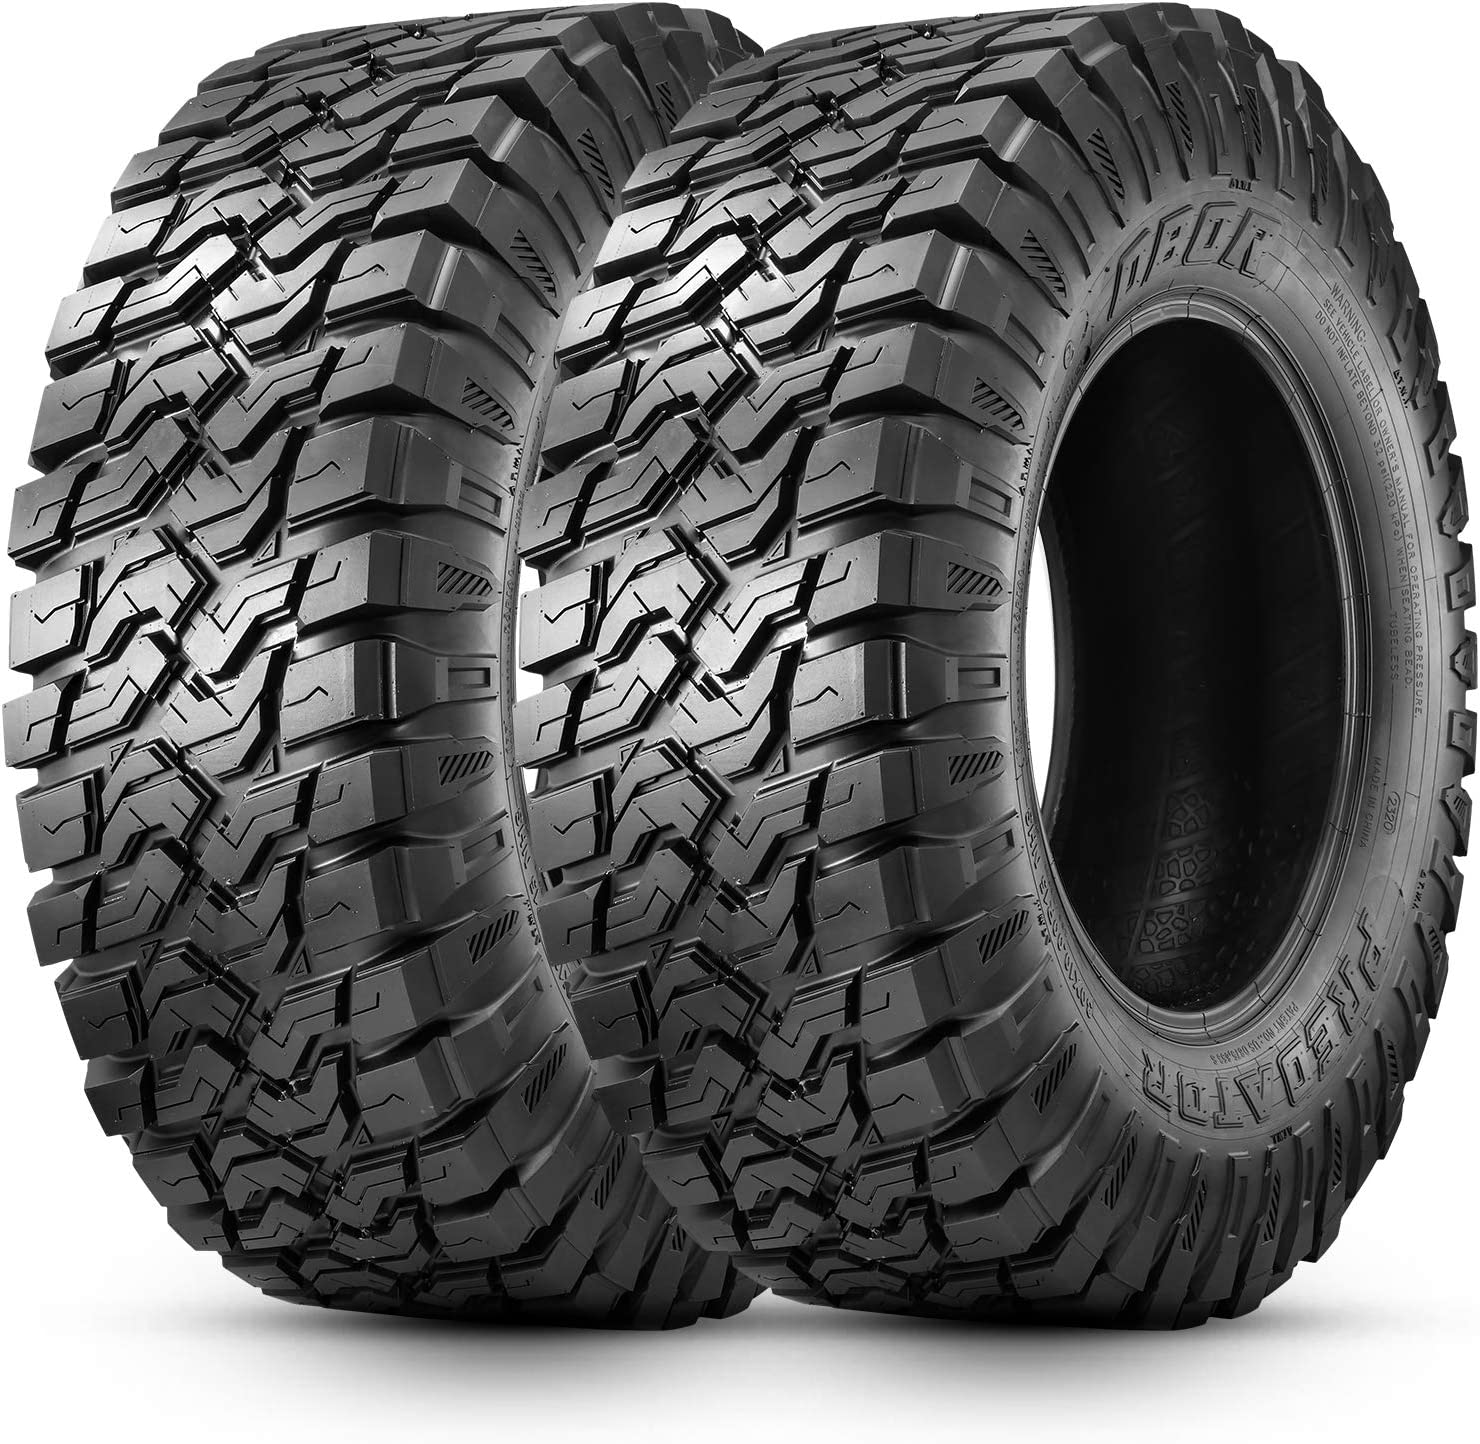 OBOR Predator Radial Selling and selling Tire 34x10-15 for 2021 spring and summer new UTV Race tire BITD SxS